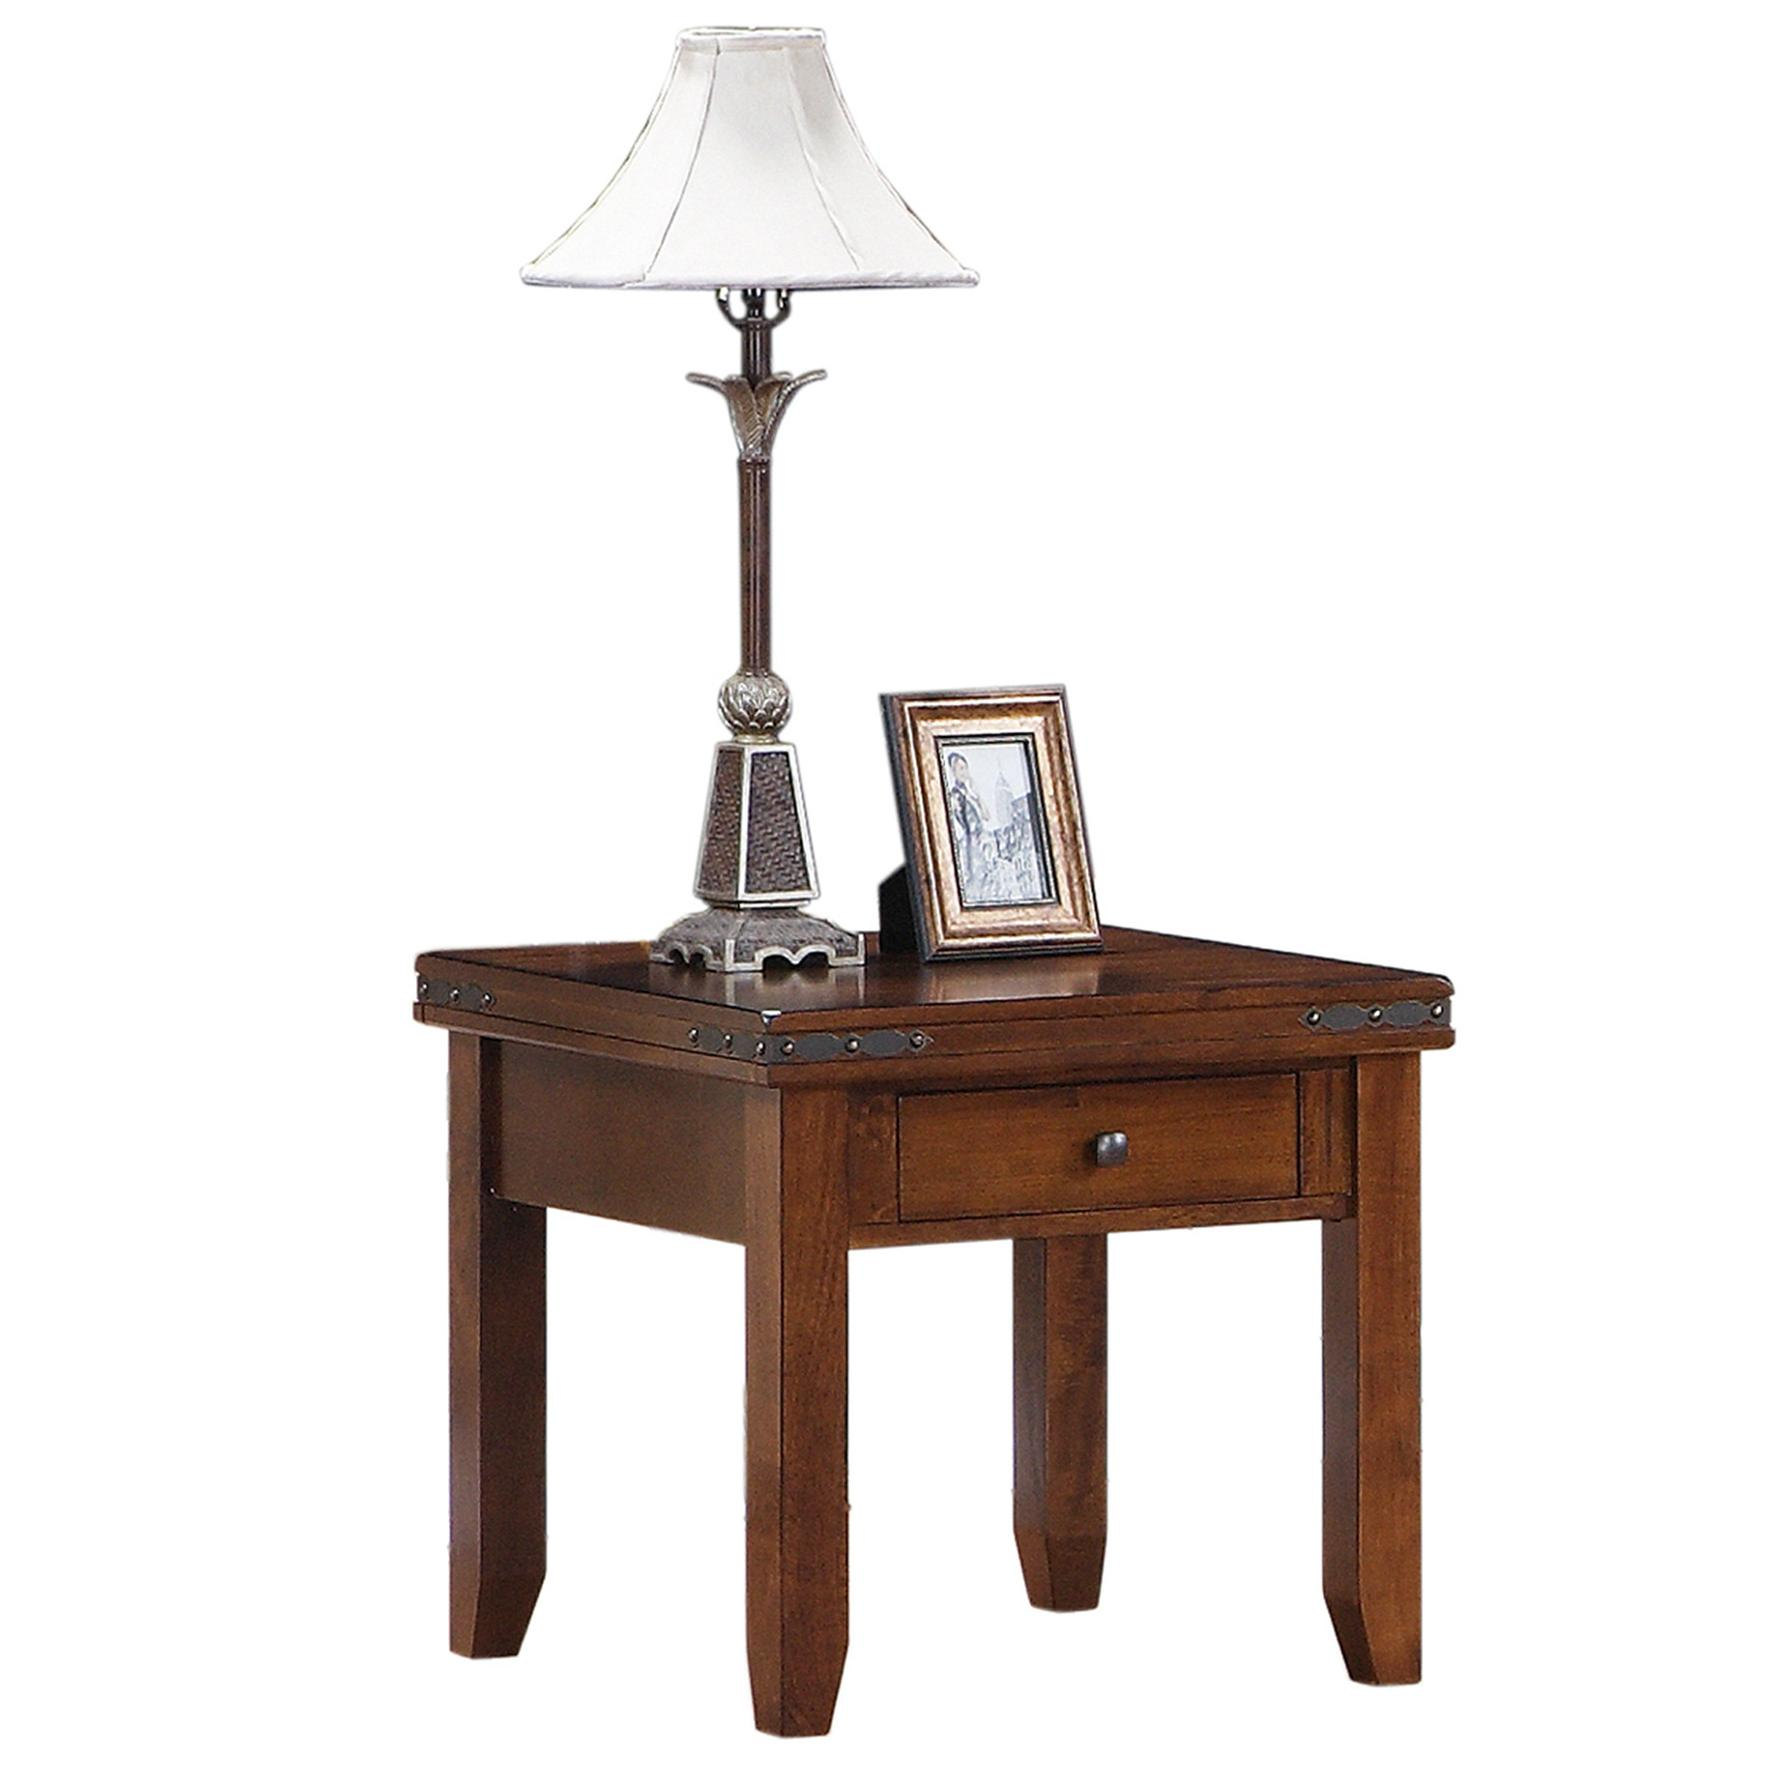 Morris Home Furnishings Coventry Coventry Square End Table - Item Number: 1268 End Table